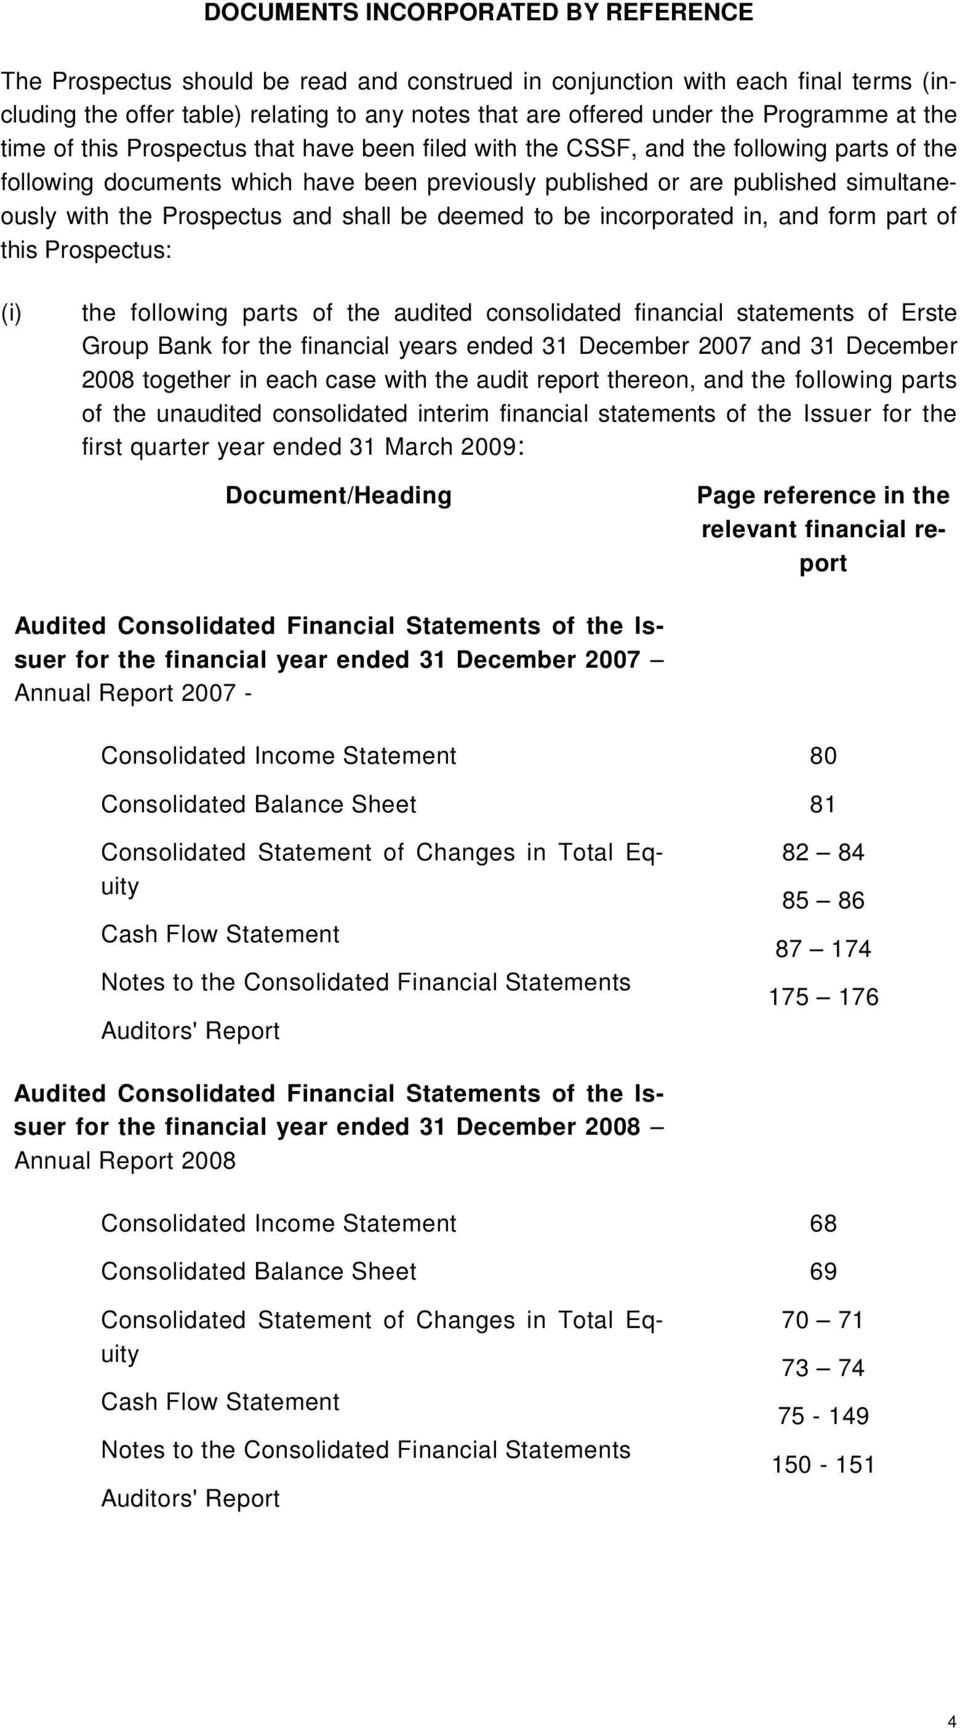 with the Prospectus and shall be deemed to be incorporated in, and form part of this Prospectus: (i) the following parts of the audited consolidated financial statements of Erste Group Bank for the